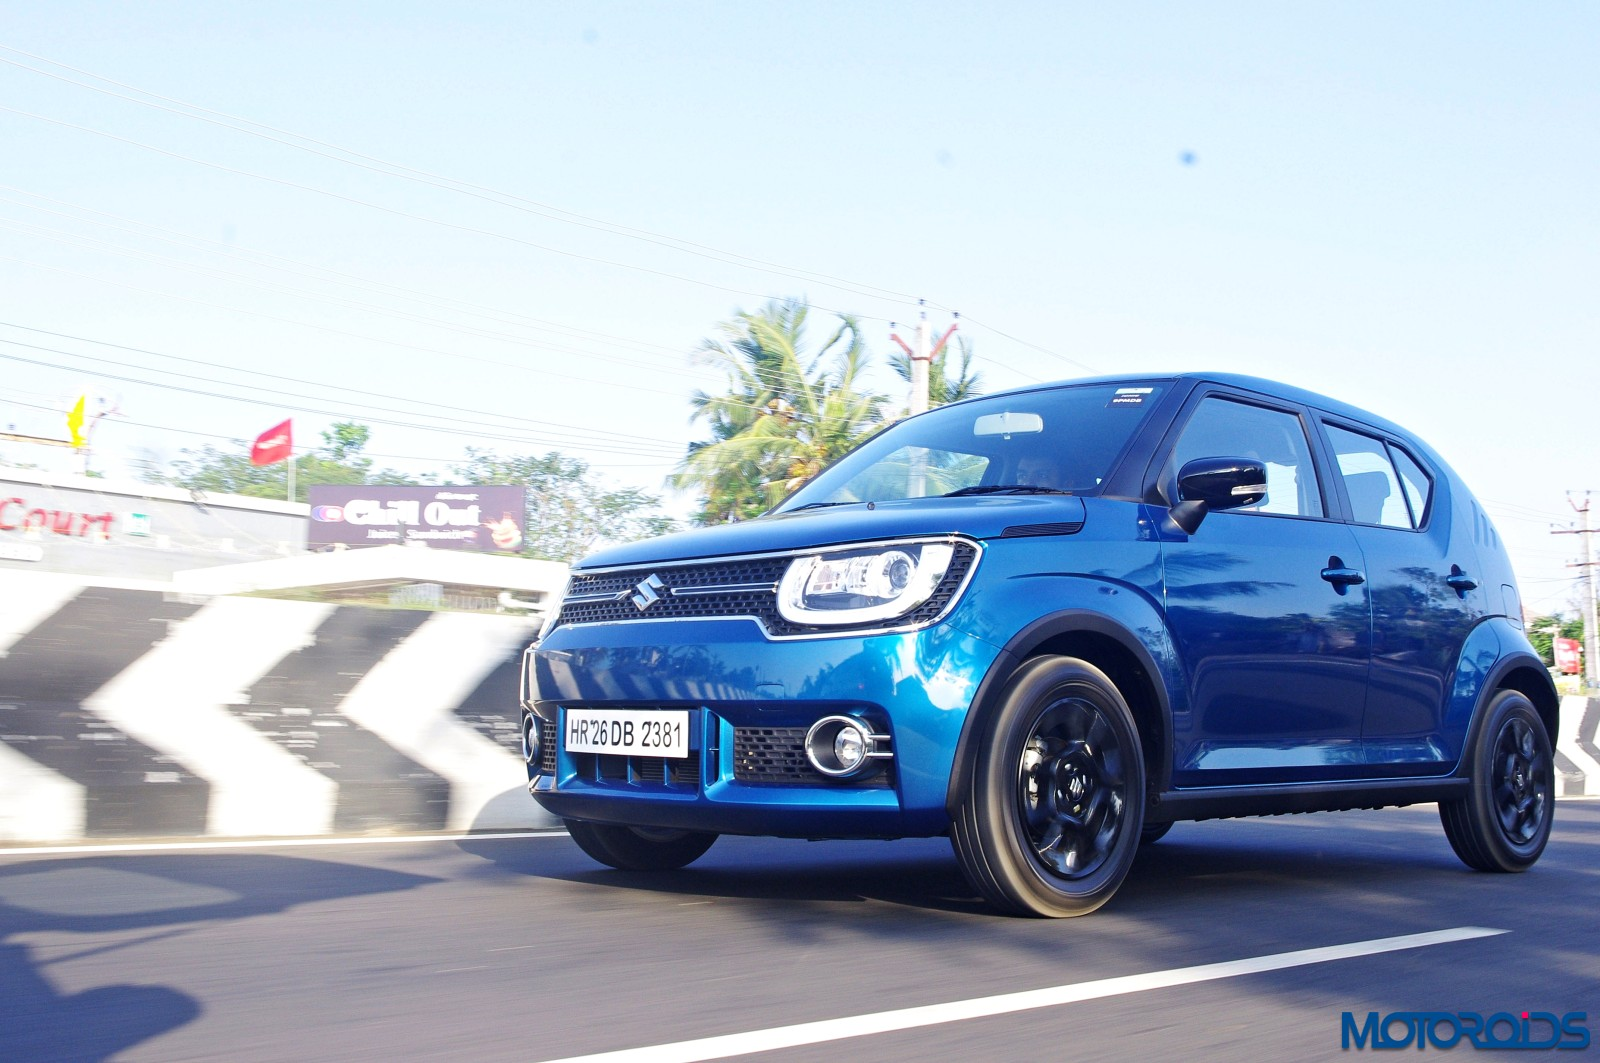 Maruti-Ignis-Review-New-Images-Action-Shots-3